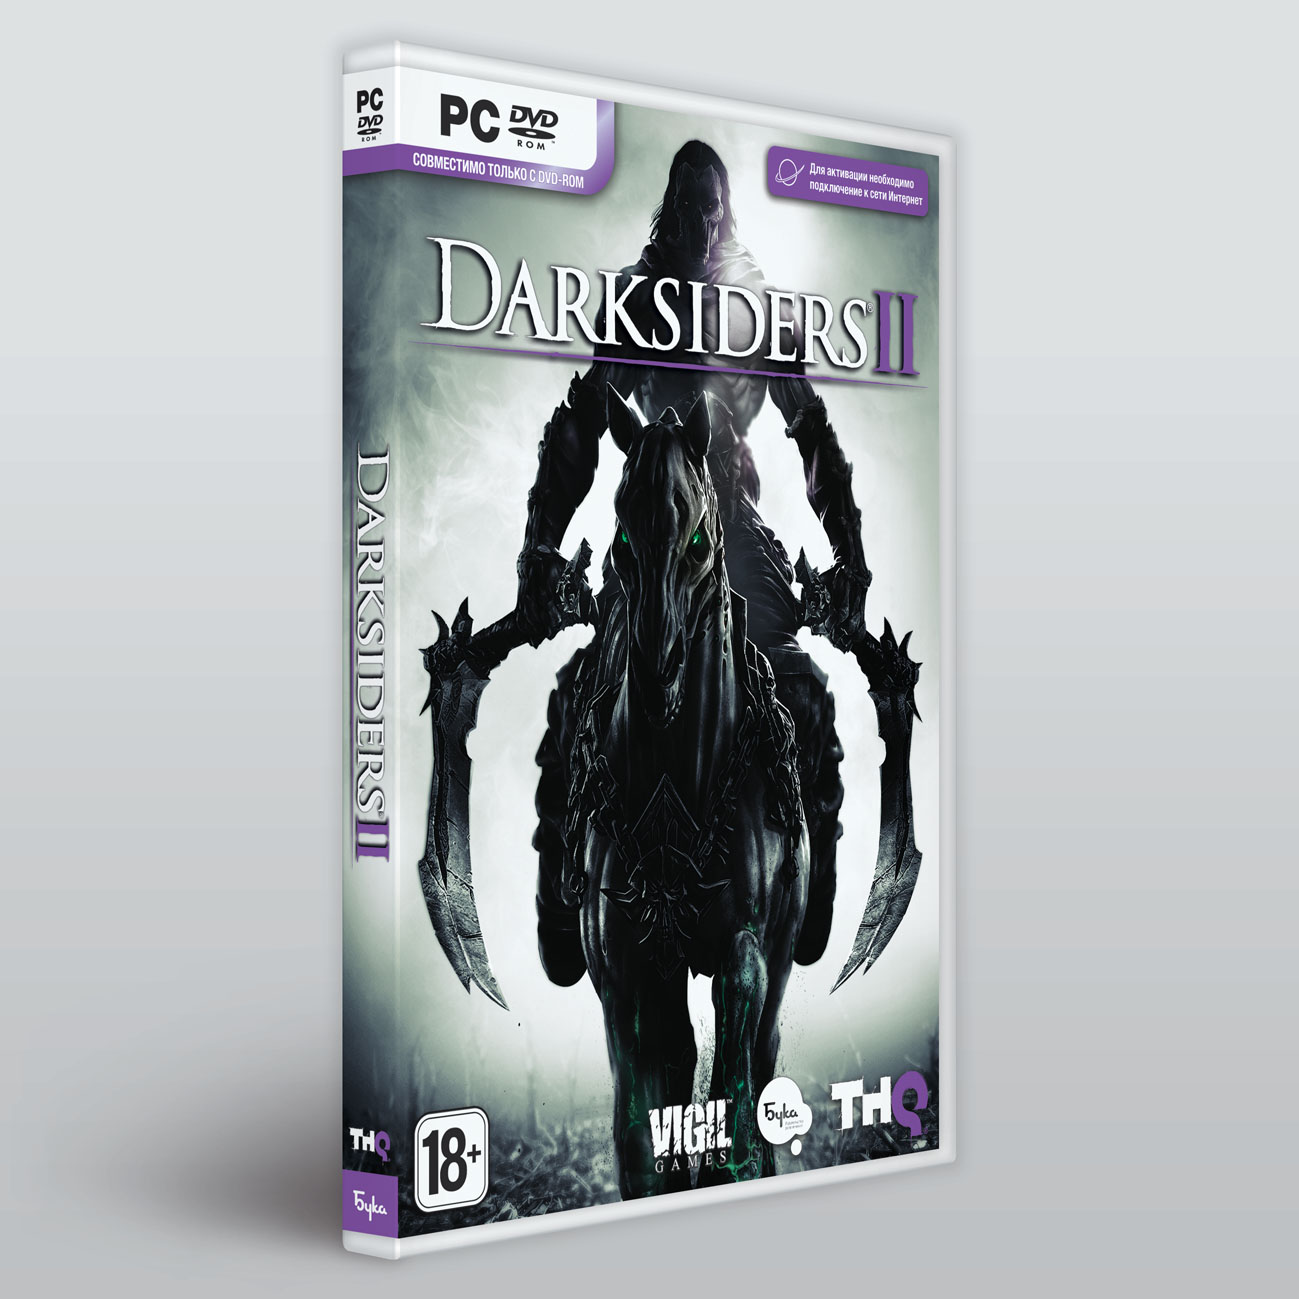 Darksiders II (Steam key)CIS